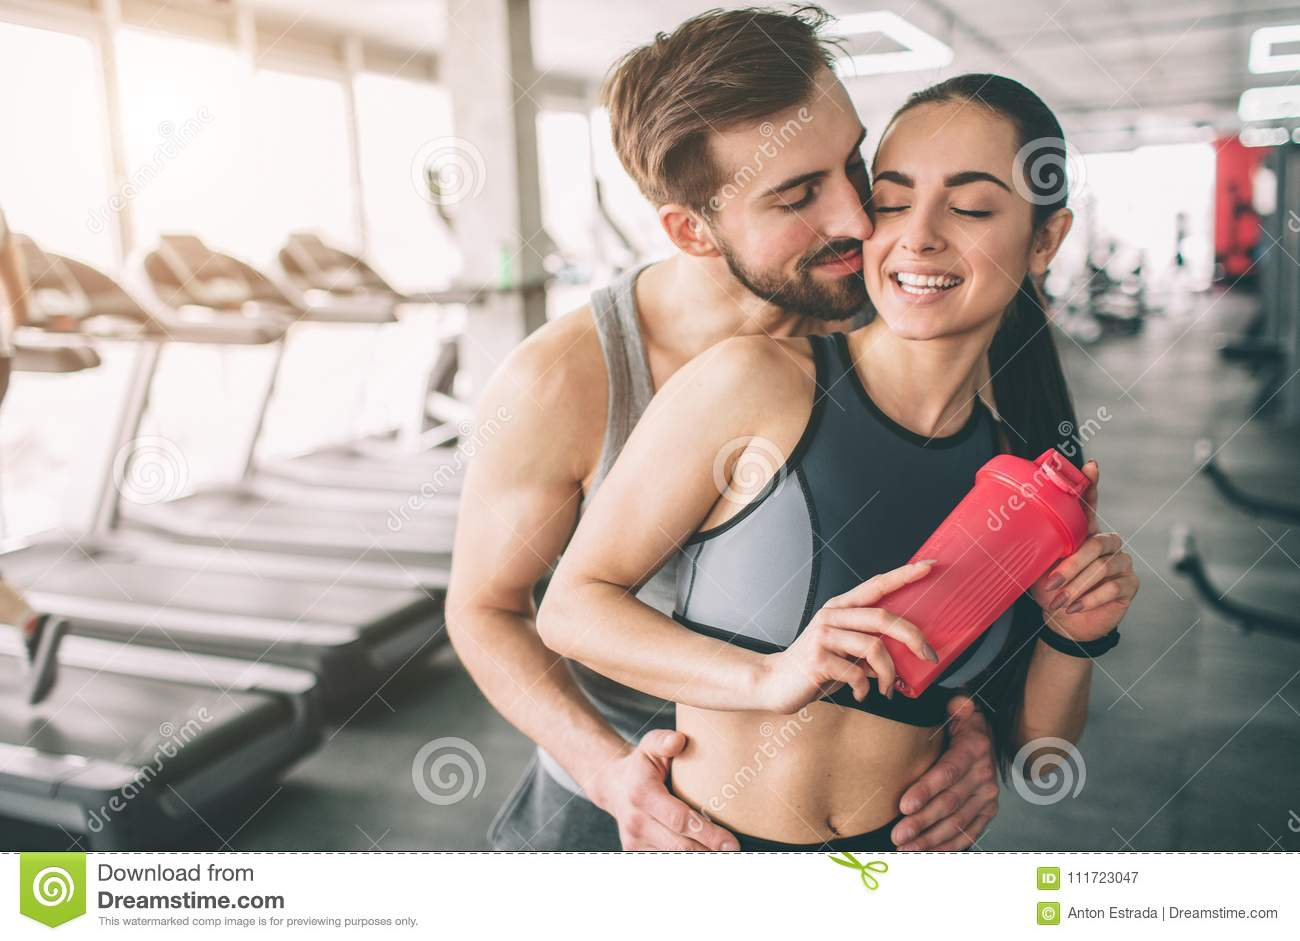 Amazing couple standing in the gym. The guy is hugging his girlfriend. She looks happy. Close up. Cut view.